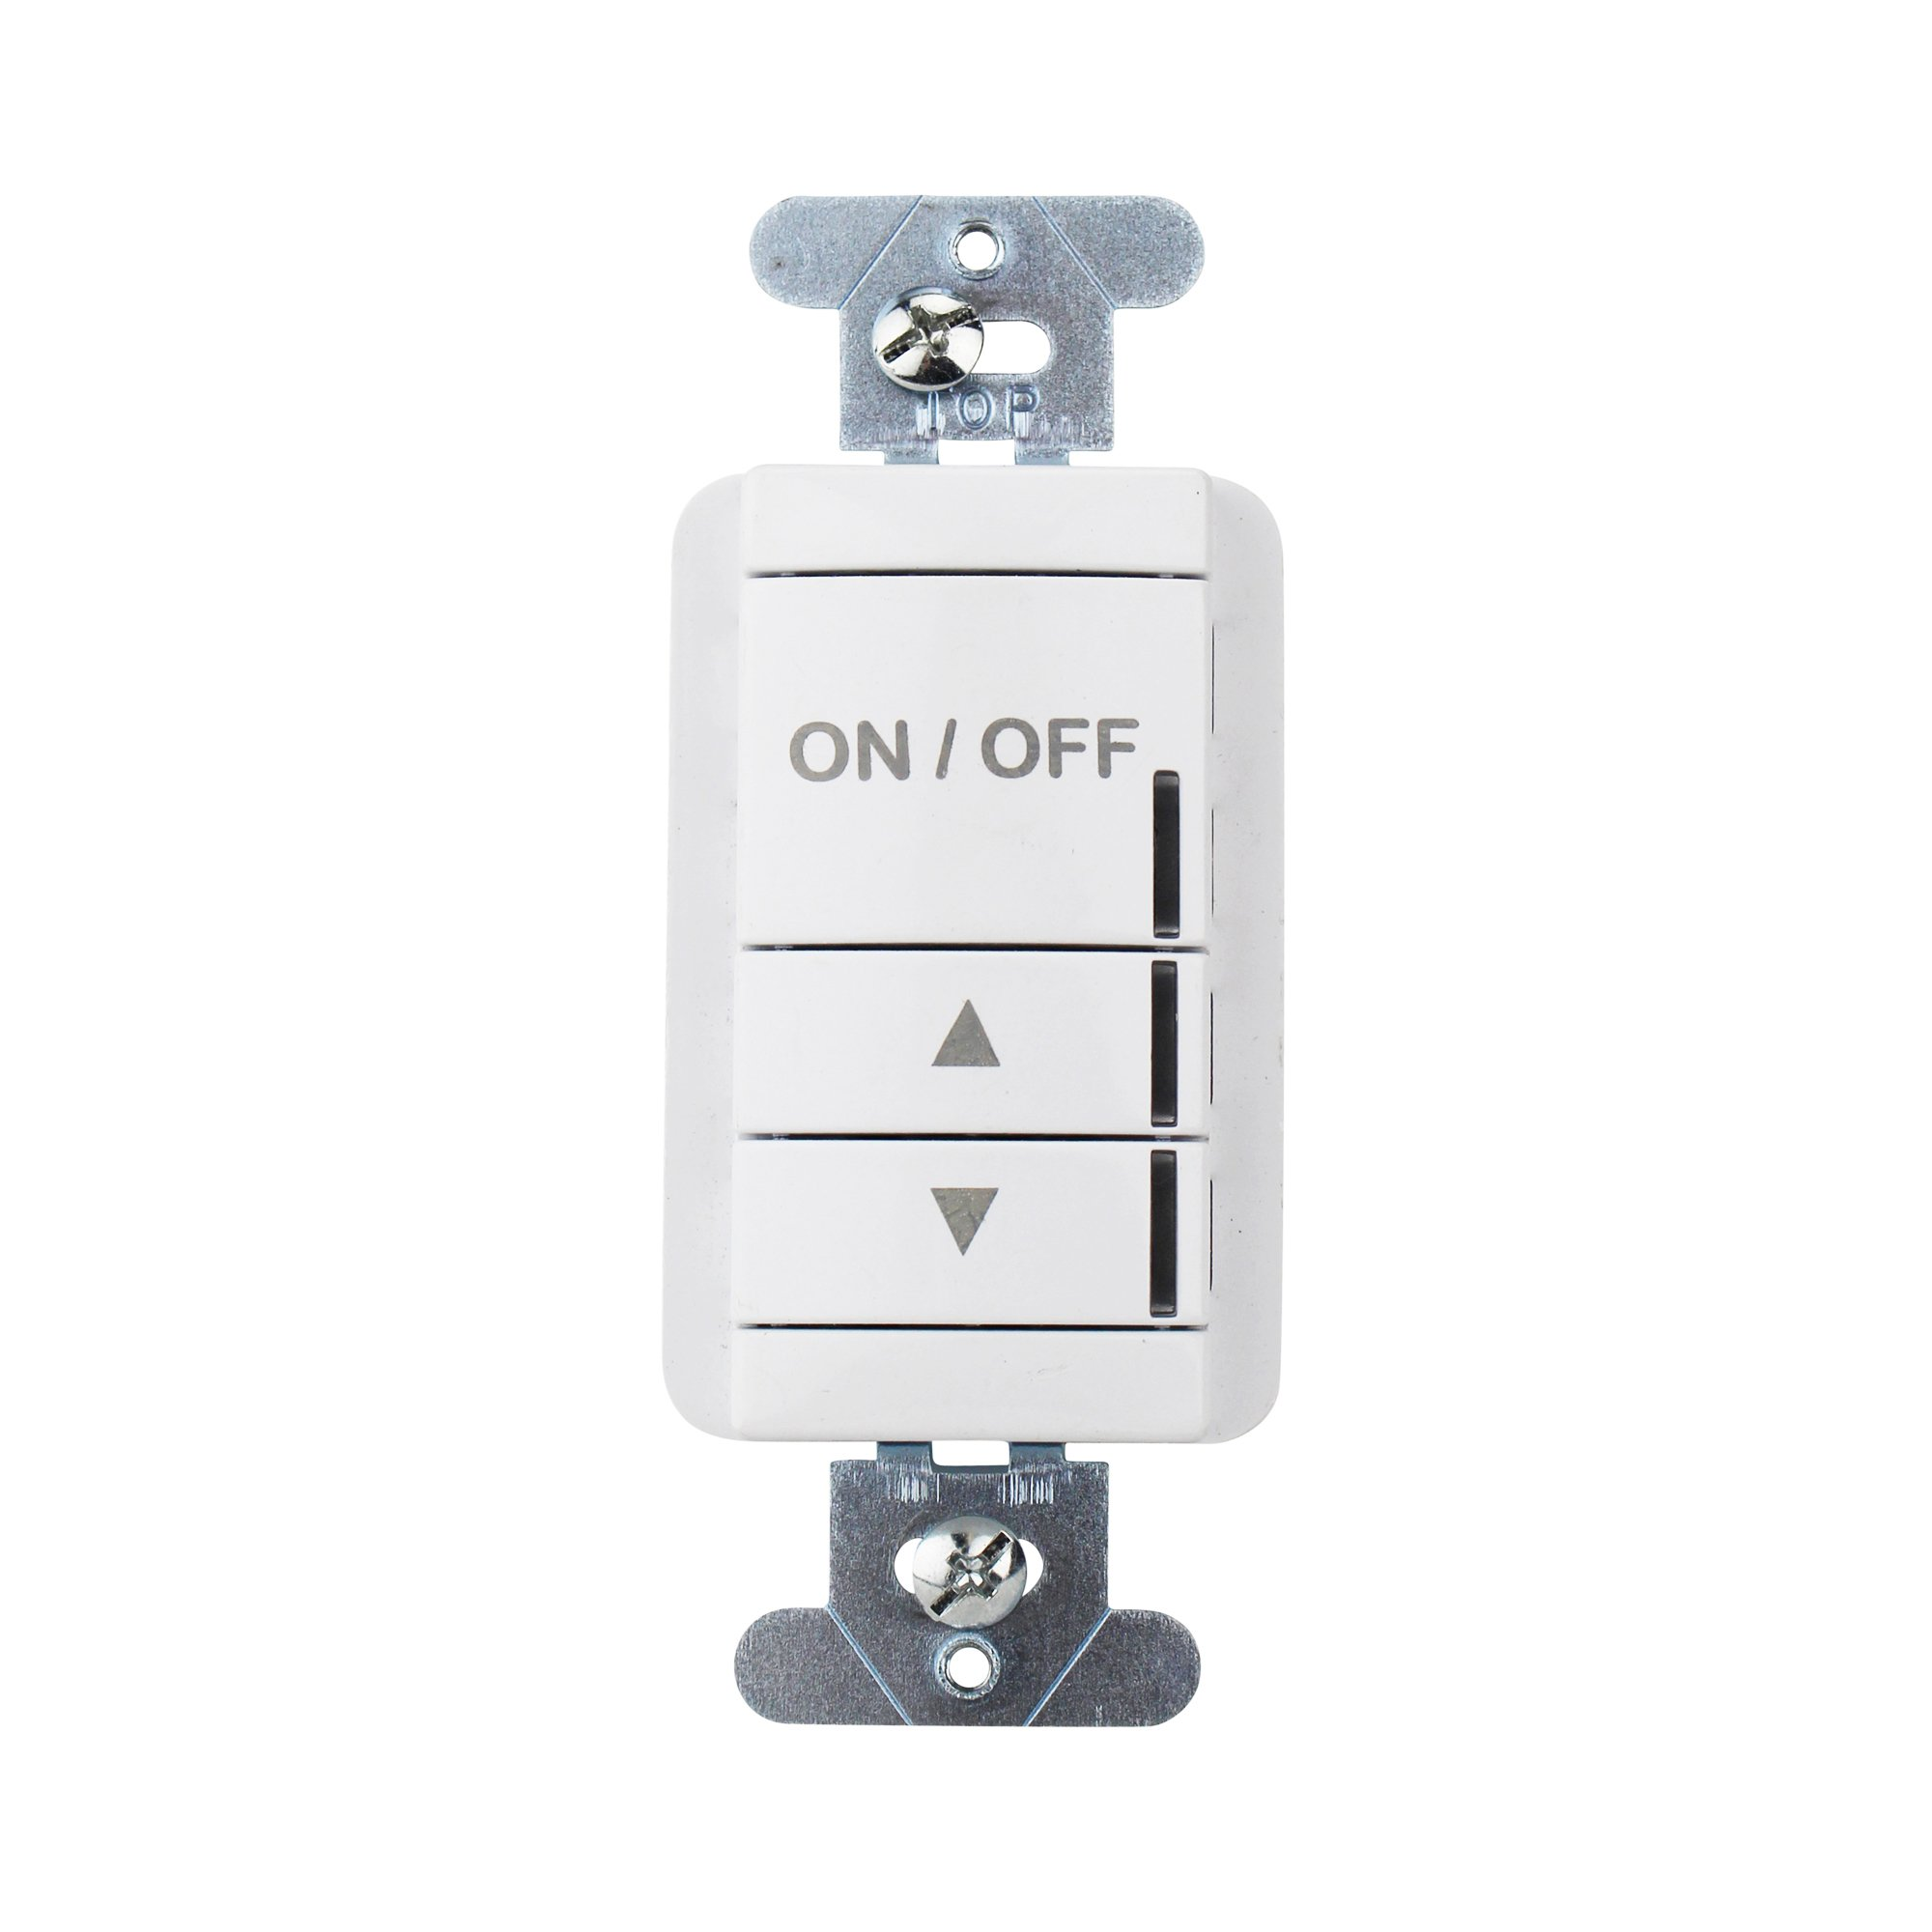 Sensor Switch NPODM-DX-WH nLight Push Button WallPod Dimming Switch, White